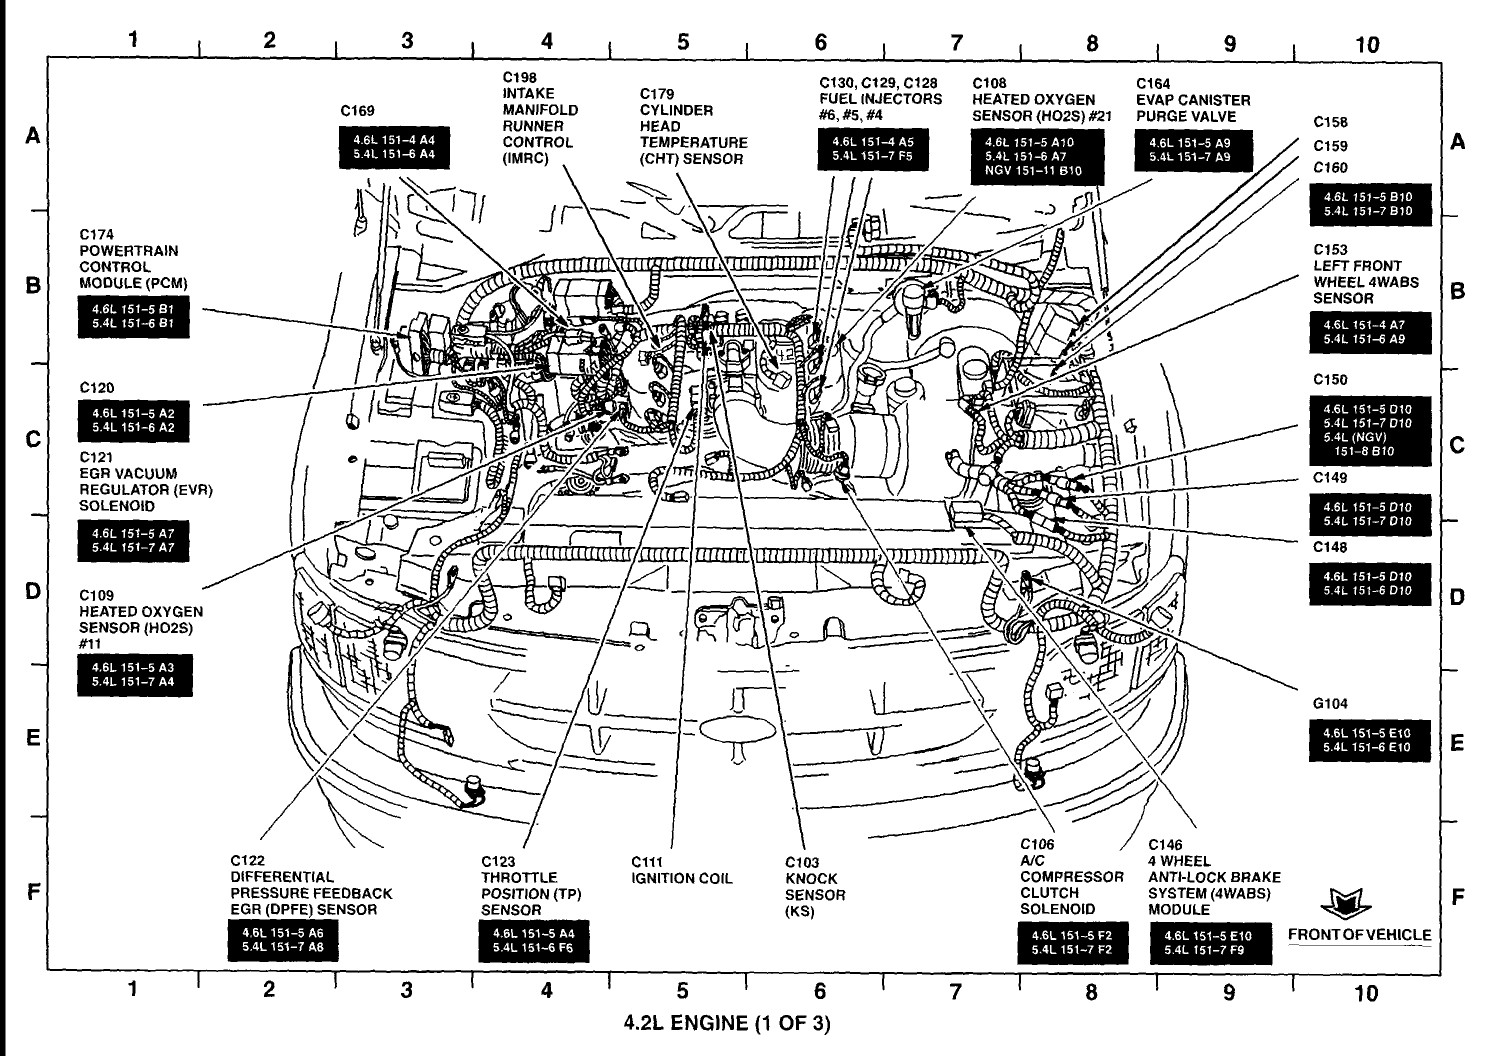 So Ford F 150 Parts Diagram Wiring Diagram